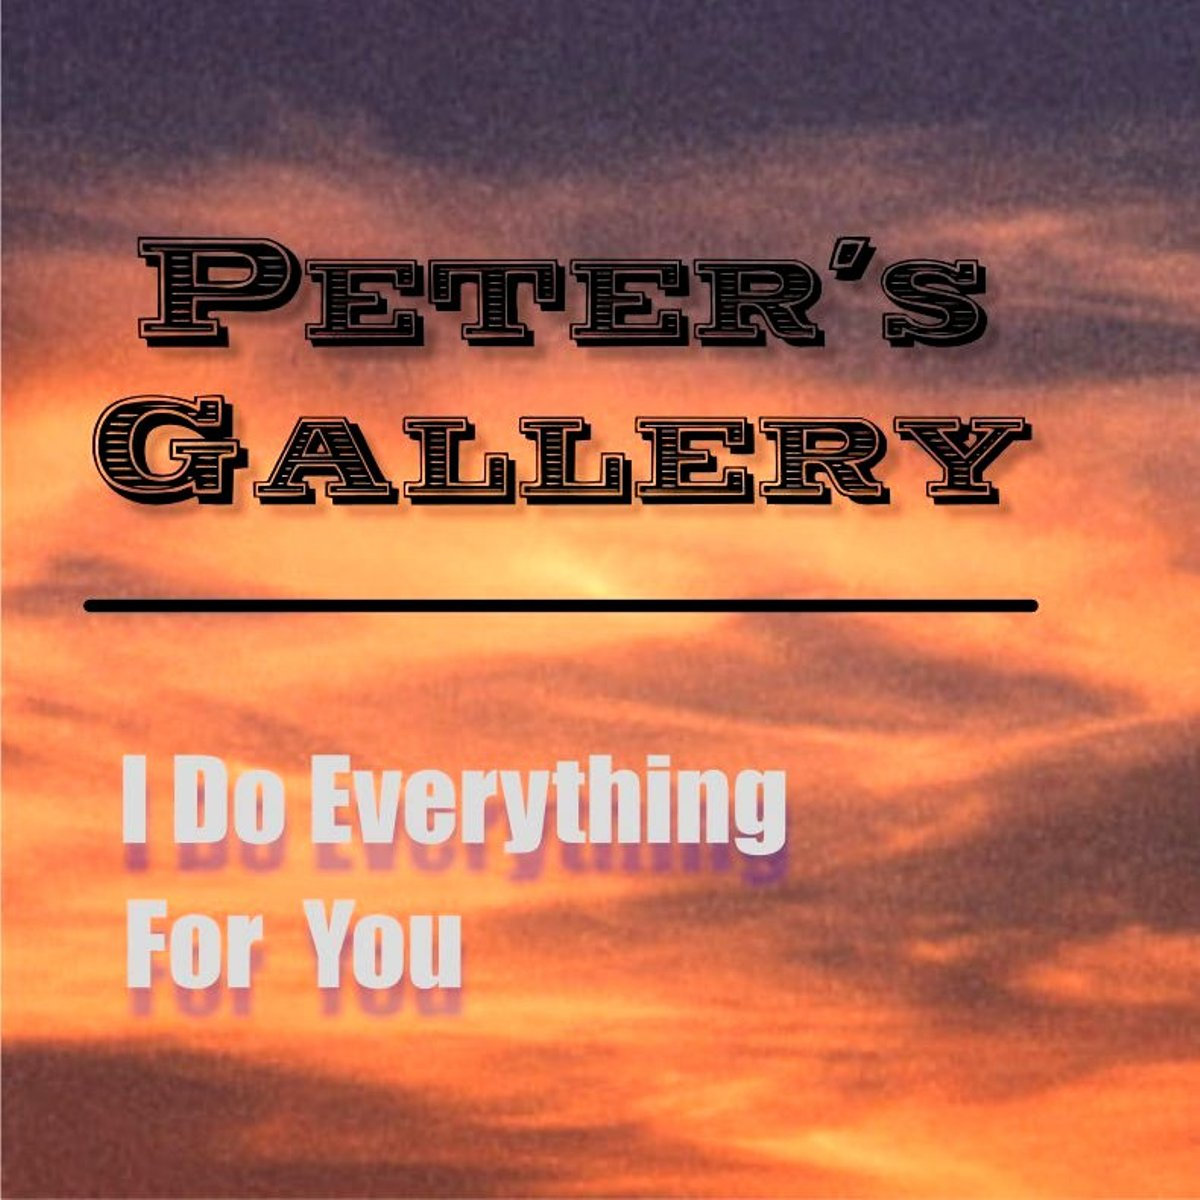 I do everything for you_Cover_1200.jpg